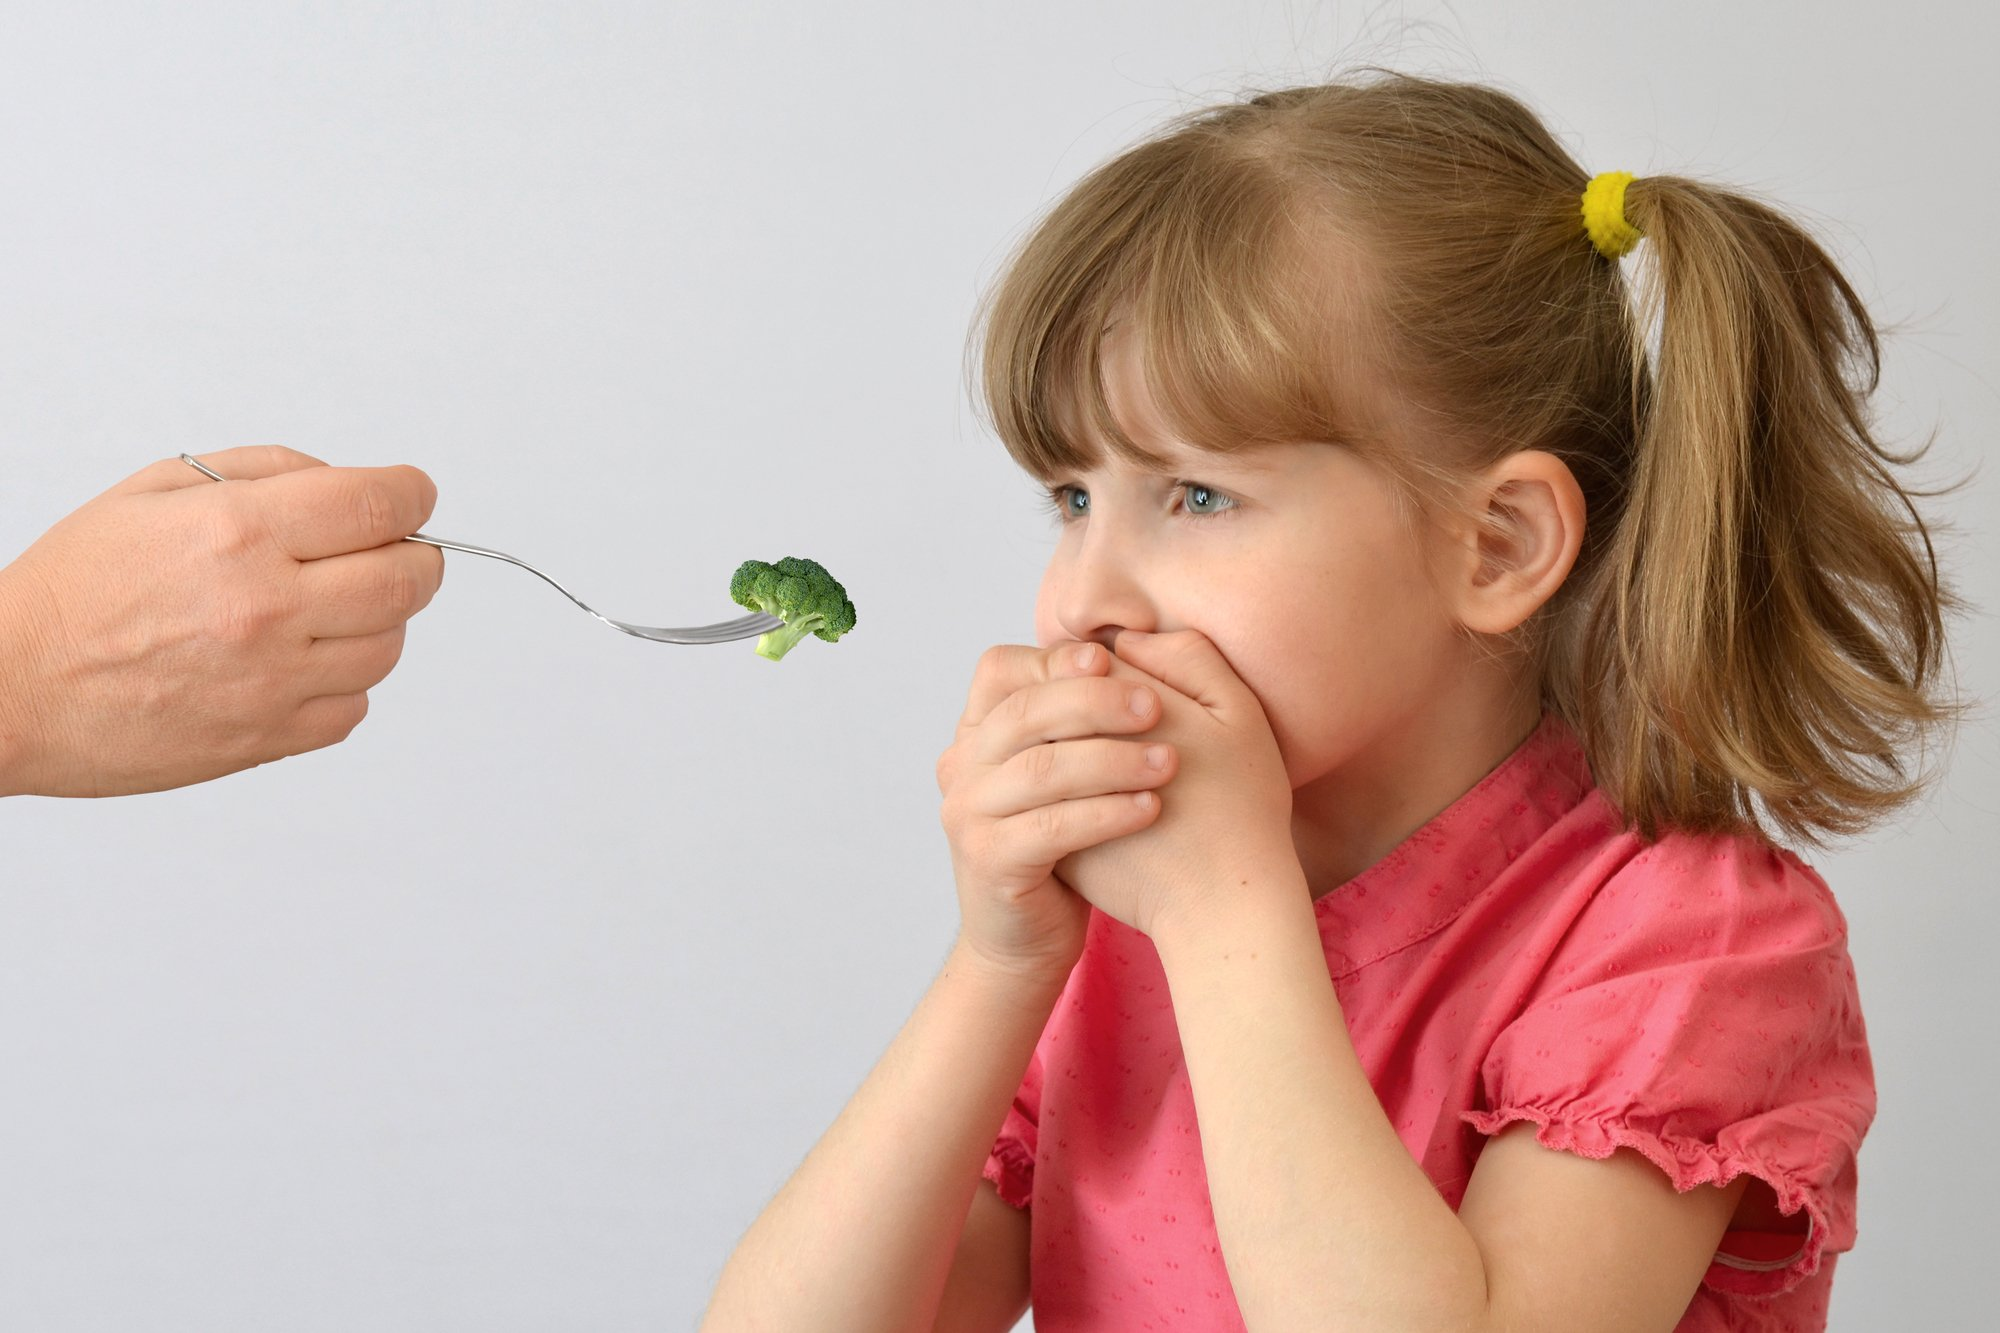 Identifying EDs: What is Avoidant Restrictive Food Intake Disorder?